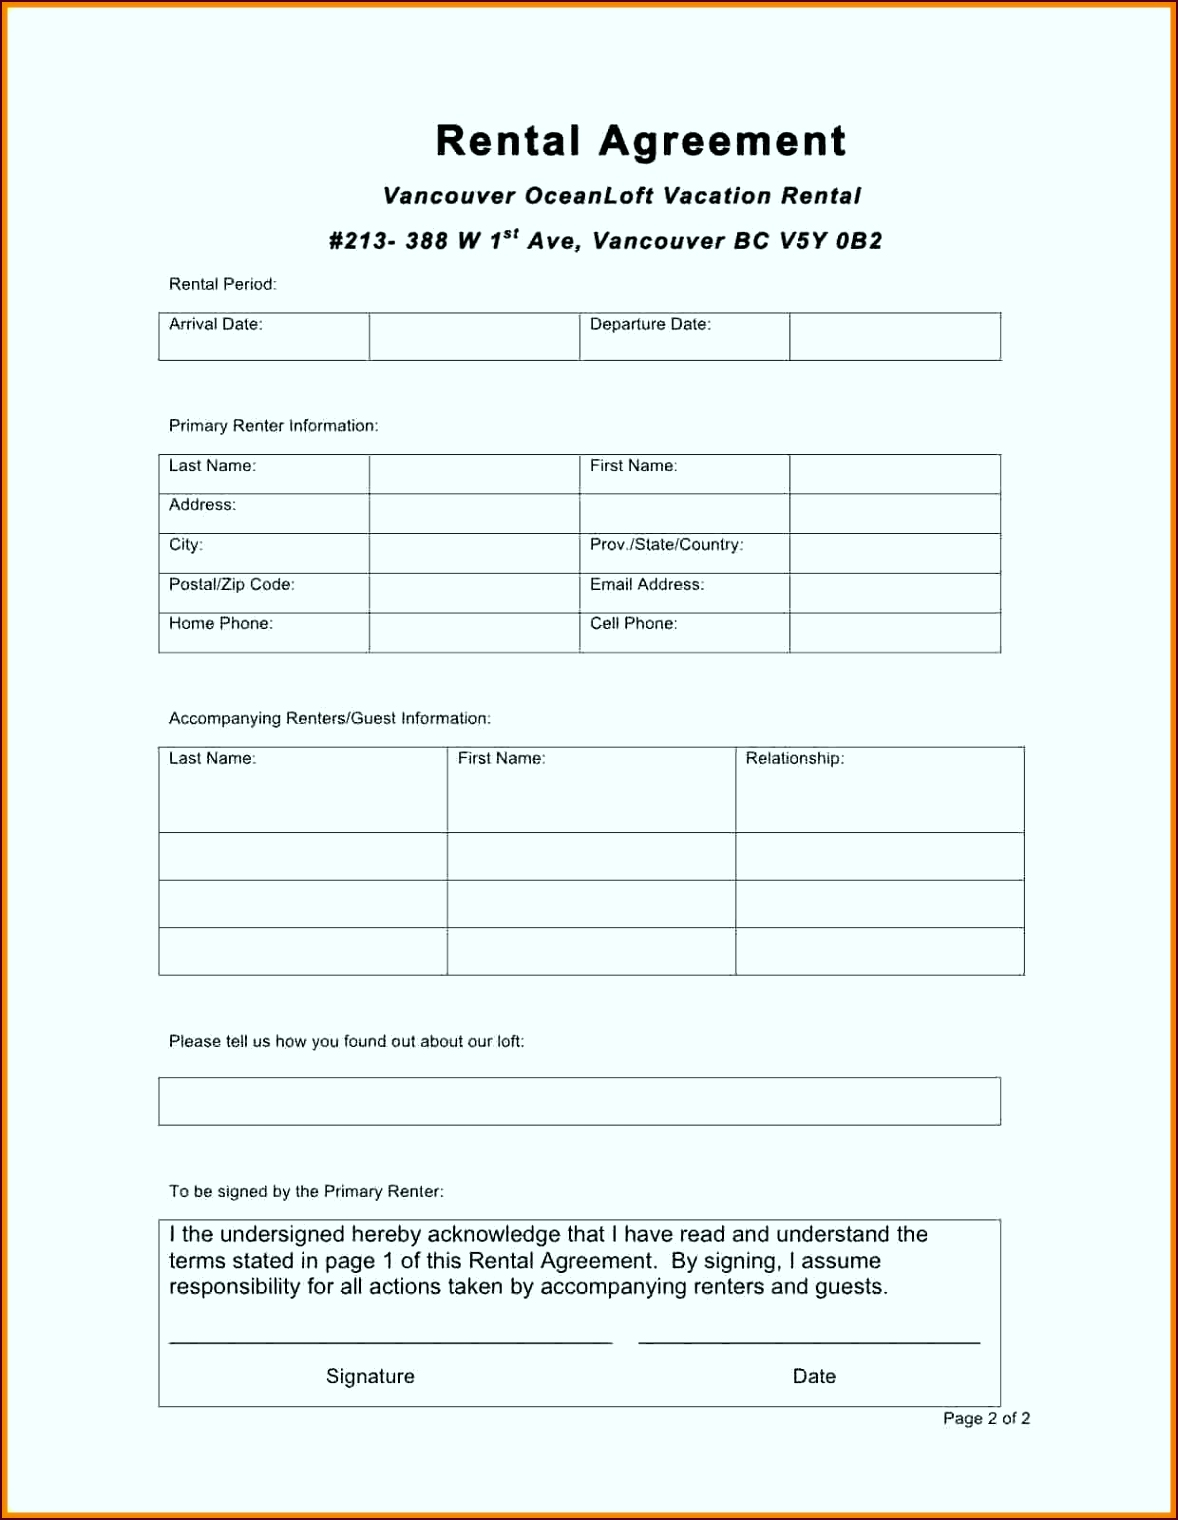 Enchanting Rental Agreement Form Template Pattern Administrative titra